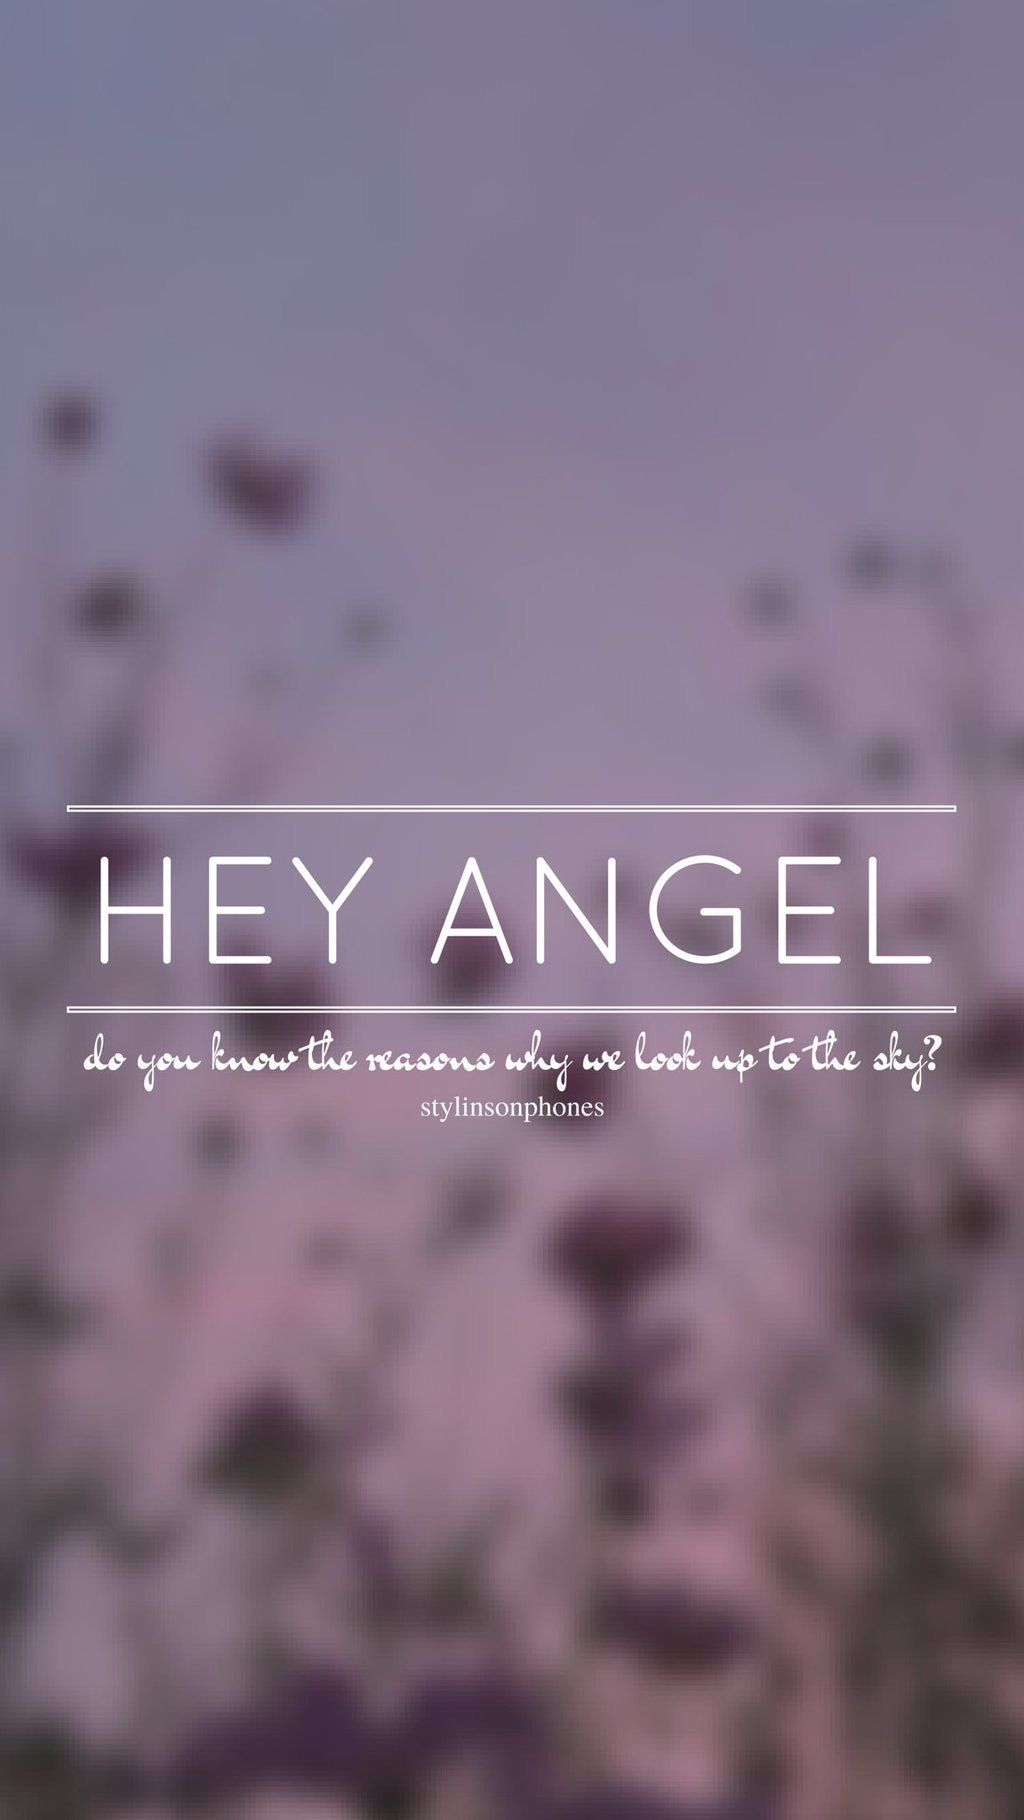 Hey Angel One Direction Ctto Stylinsonphones On Twitter One Direction Lyrics One Direction Background One Direction Songs